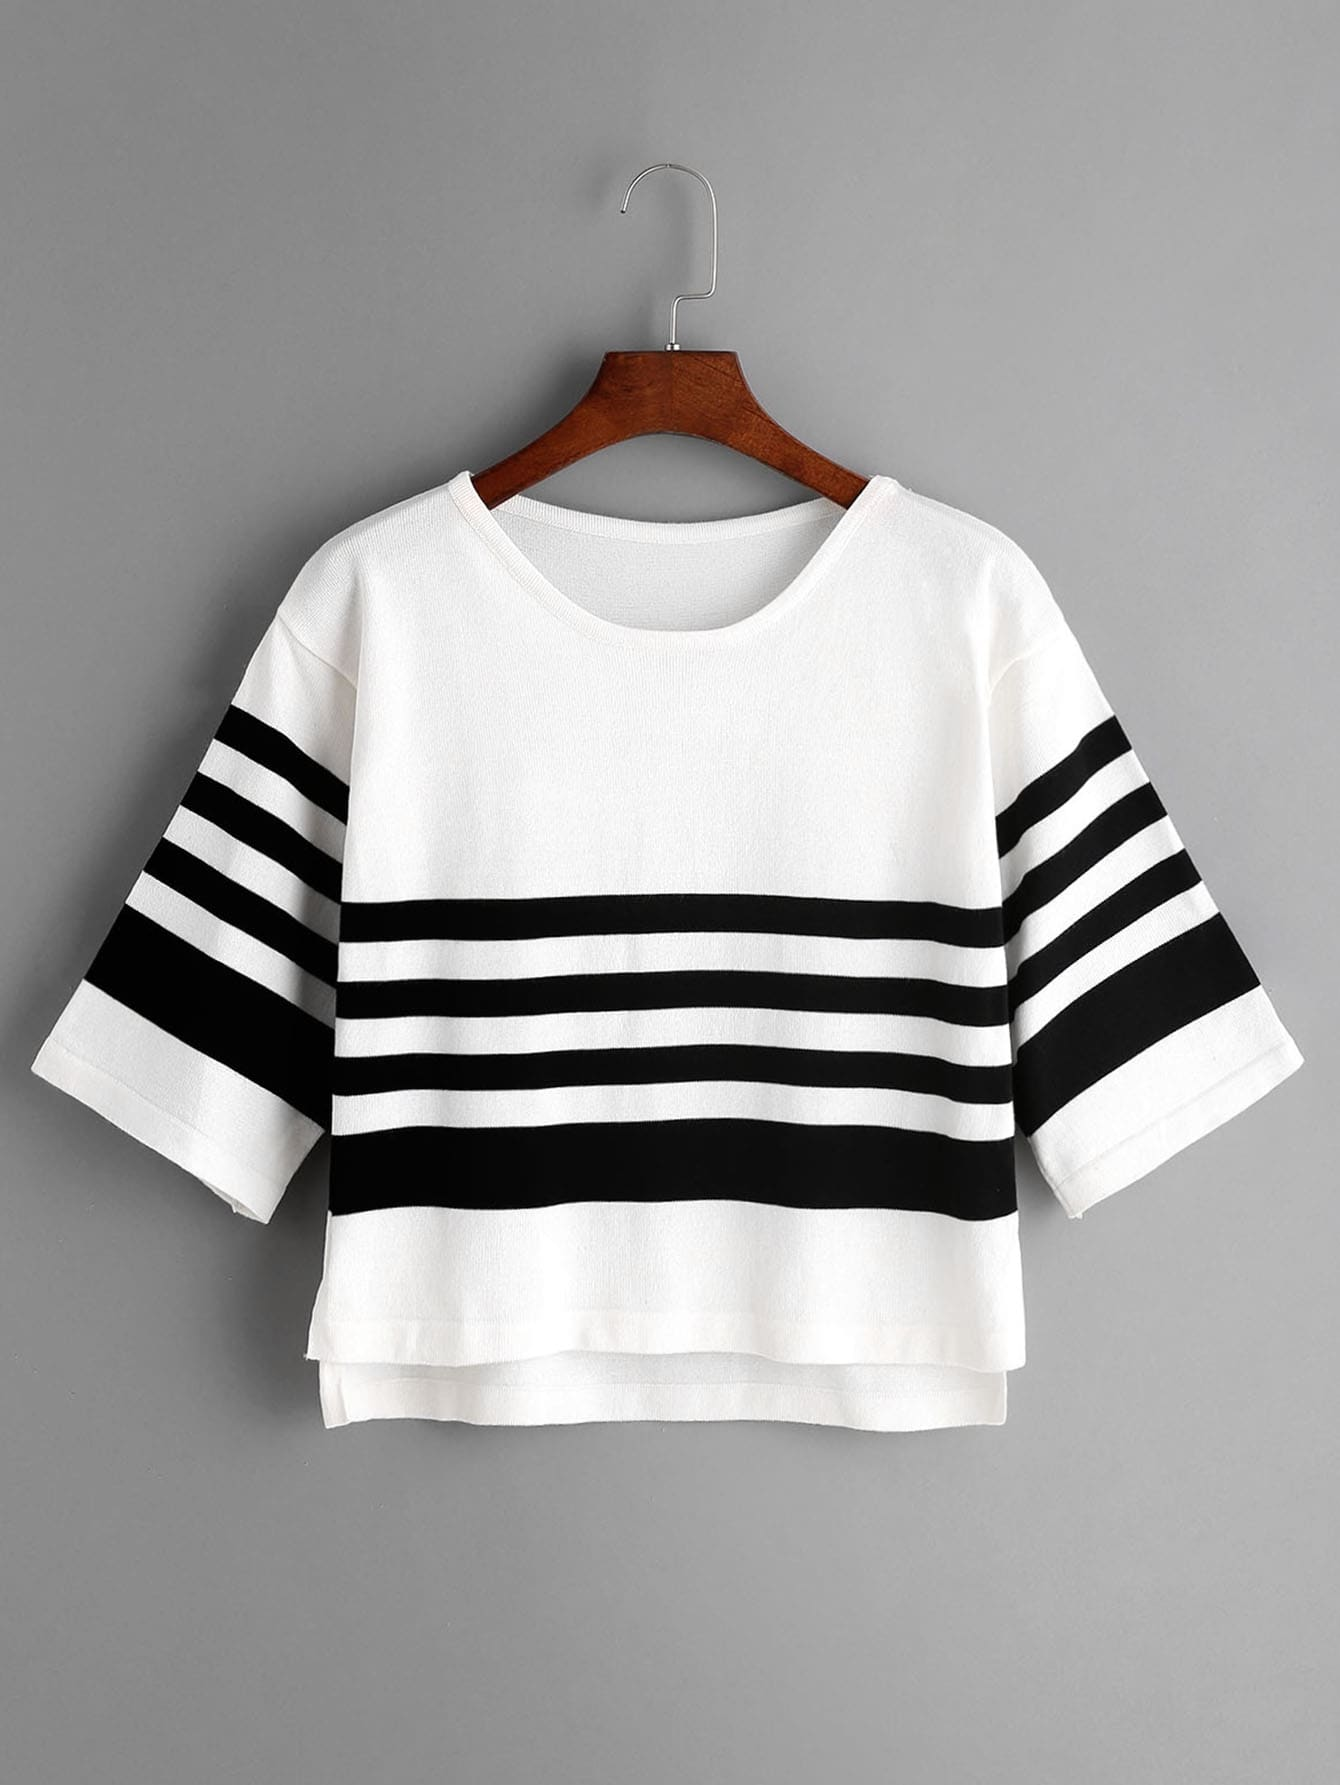 White Striped Slit Side High Low Knit T-shirt tee170309102